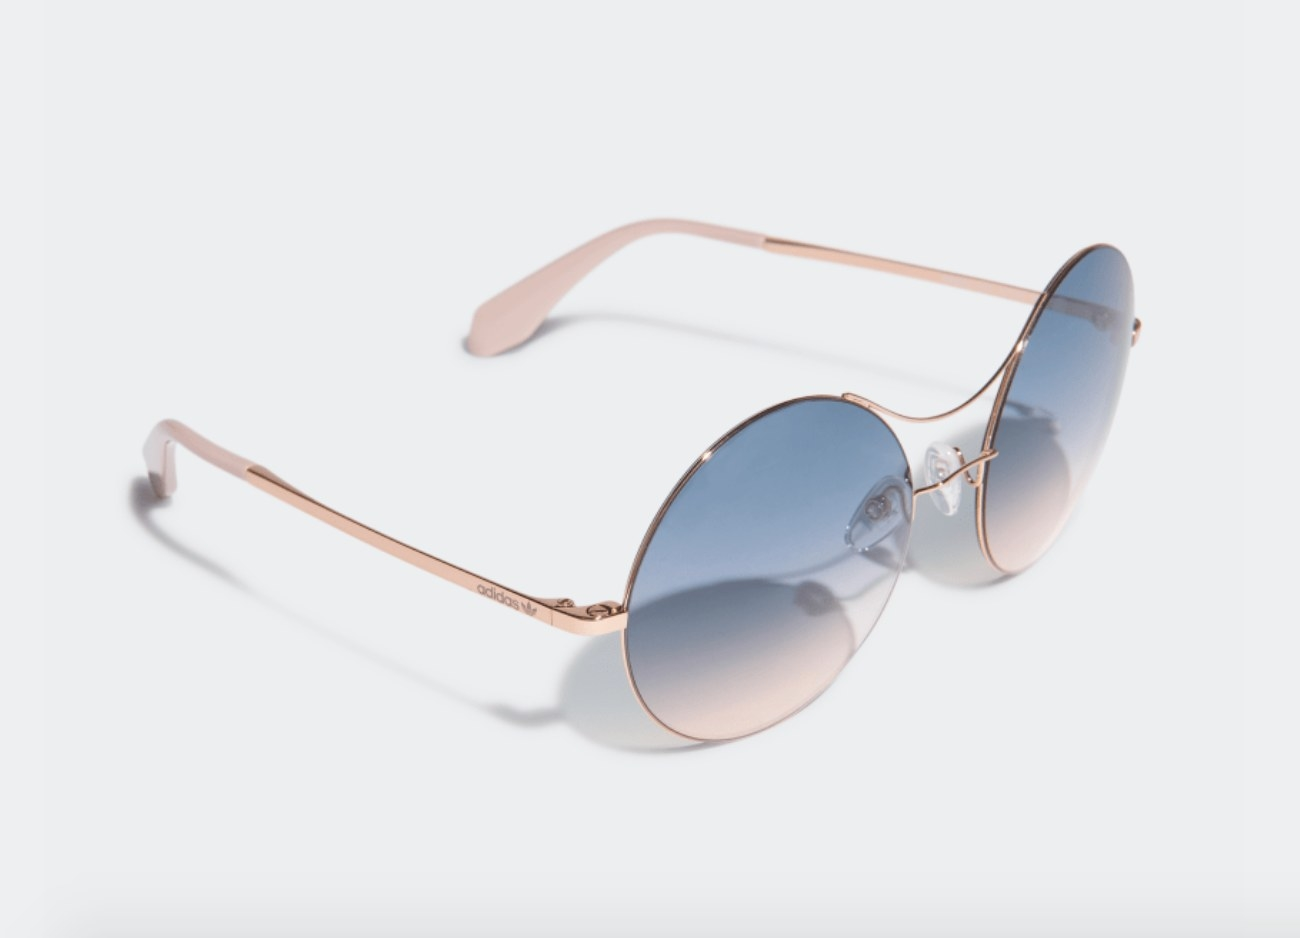 Rosegold sunglasses with blue lens